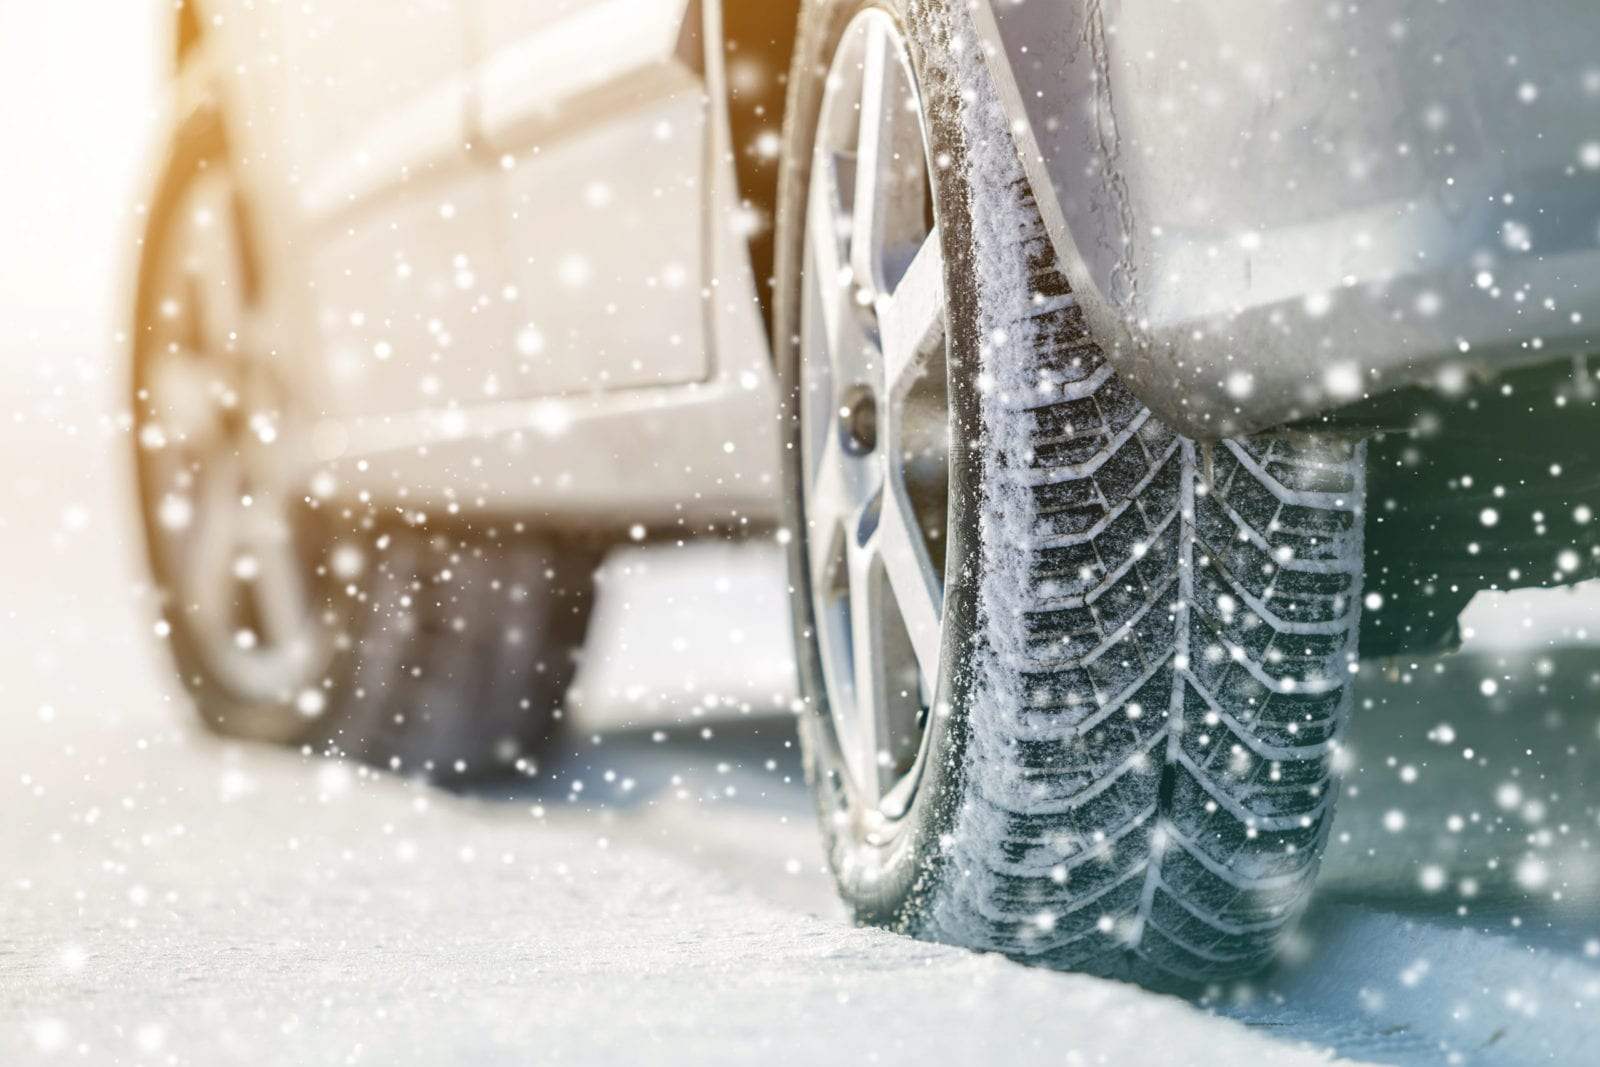 close-up-of-car-tires-in-winter-snow